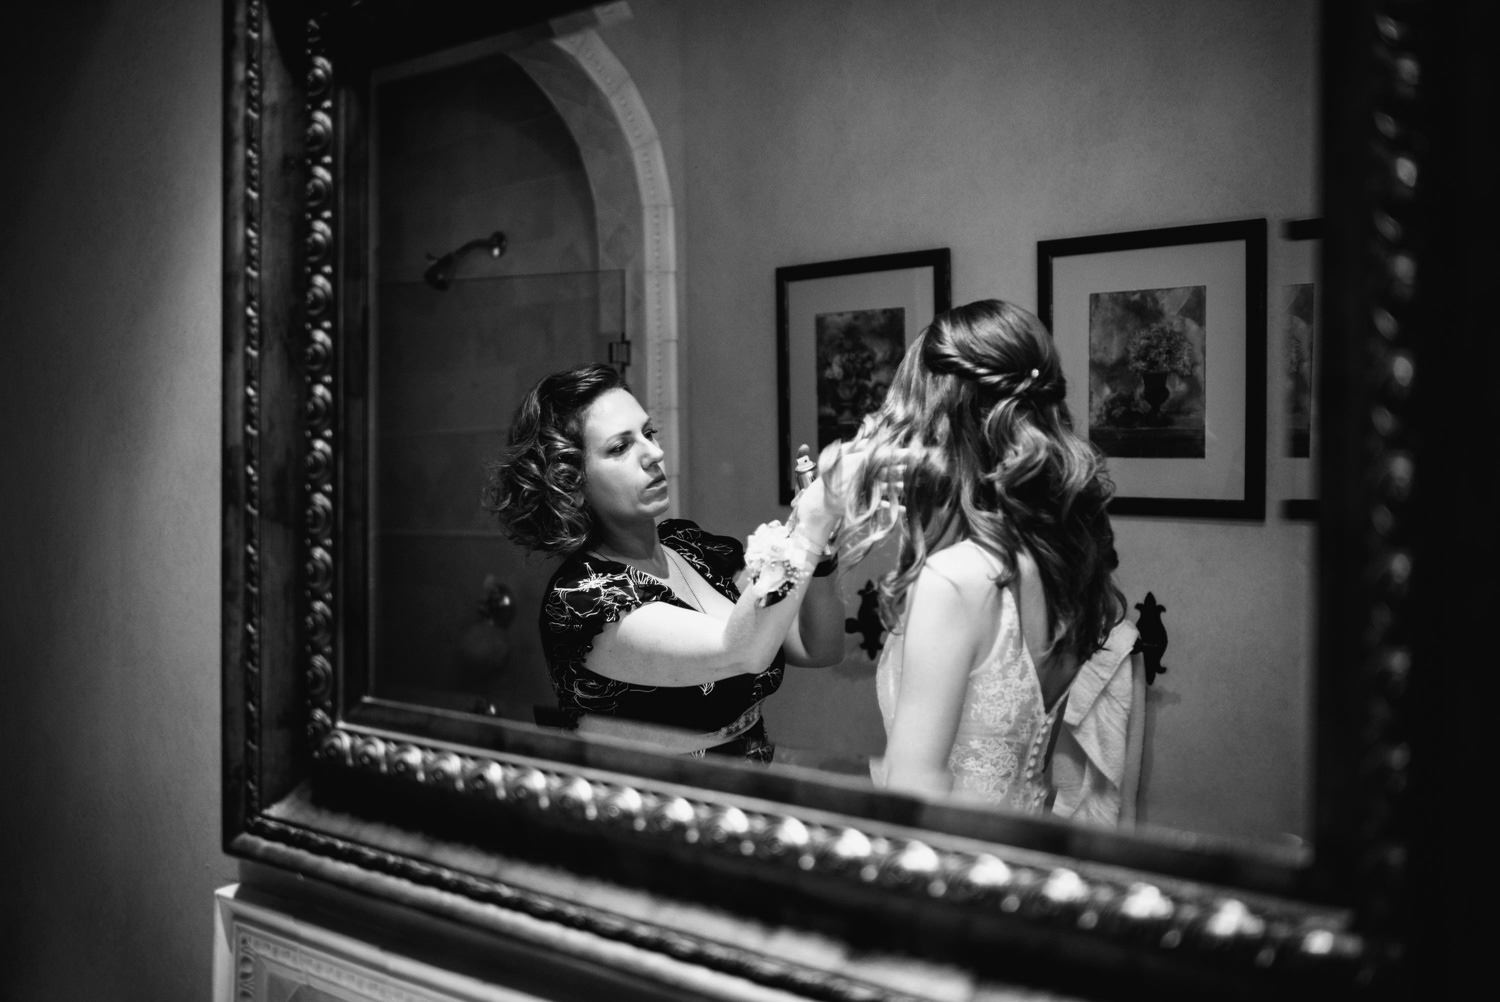 bride last minute touch ups to hair before ceremony - montecito wedding photography